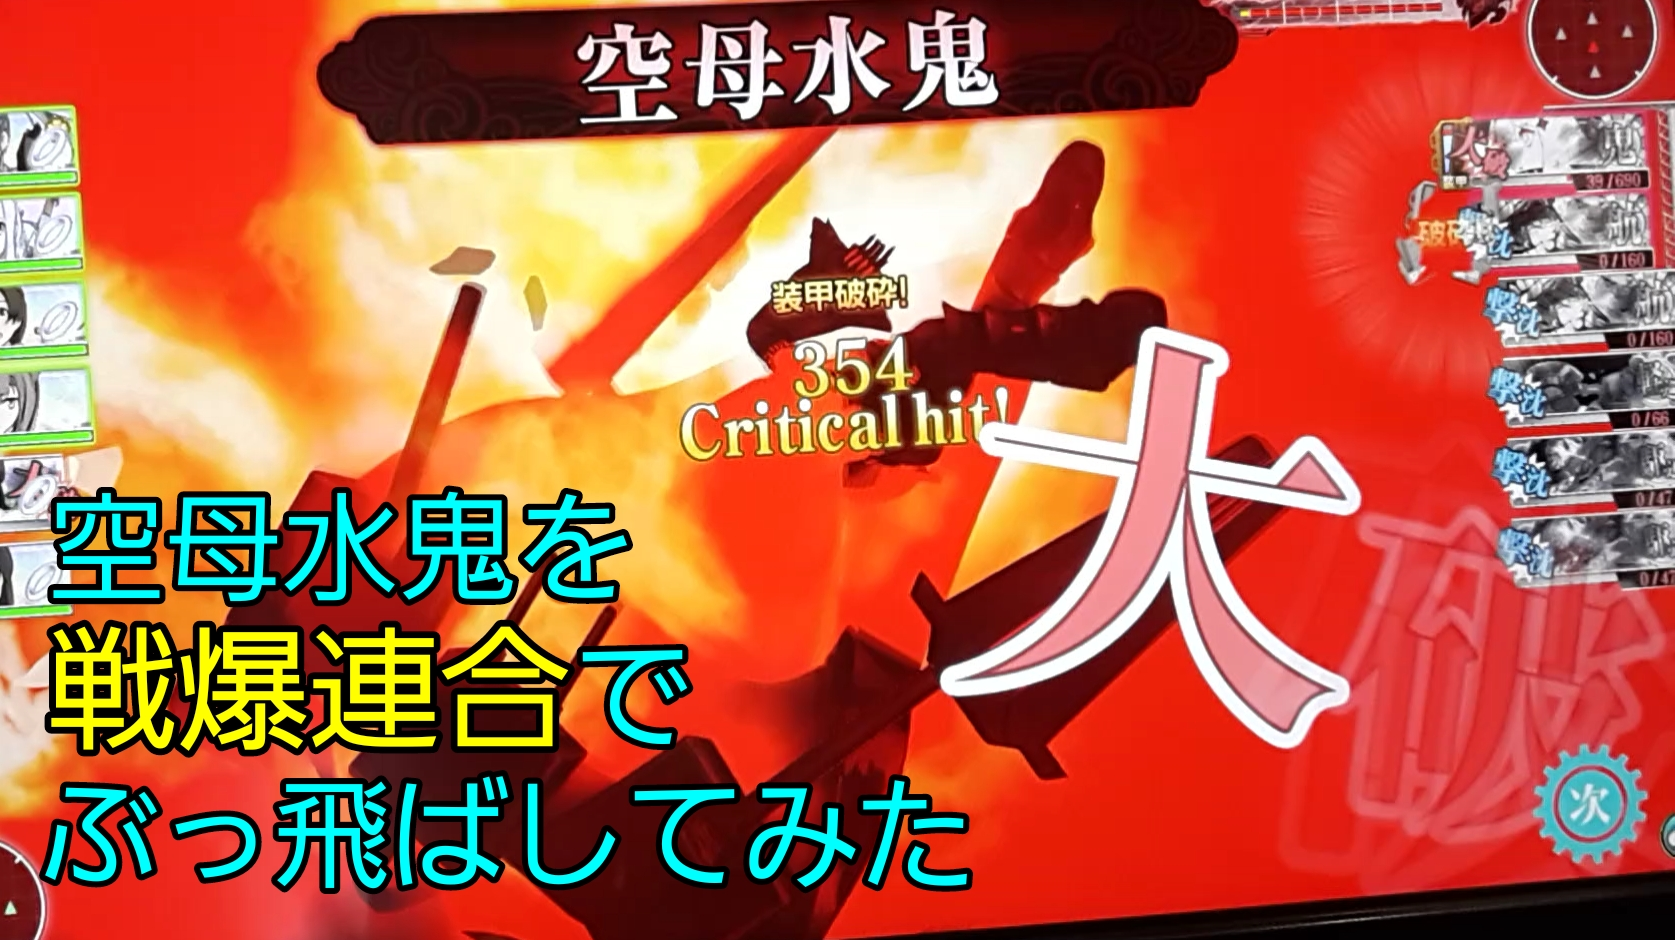 【AC】敵機動部隊迎撃戦(19春E5甲) 空母6 プレイ動画